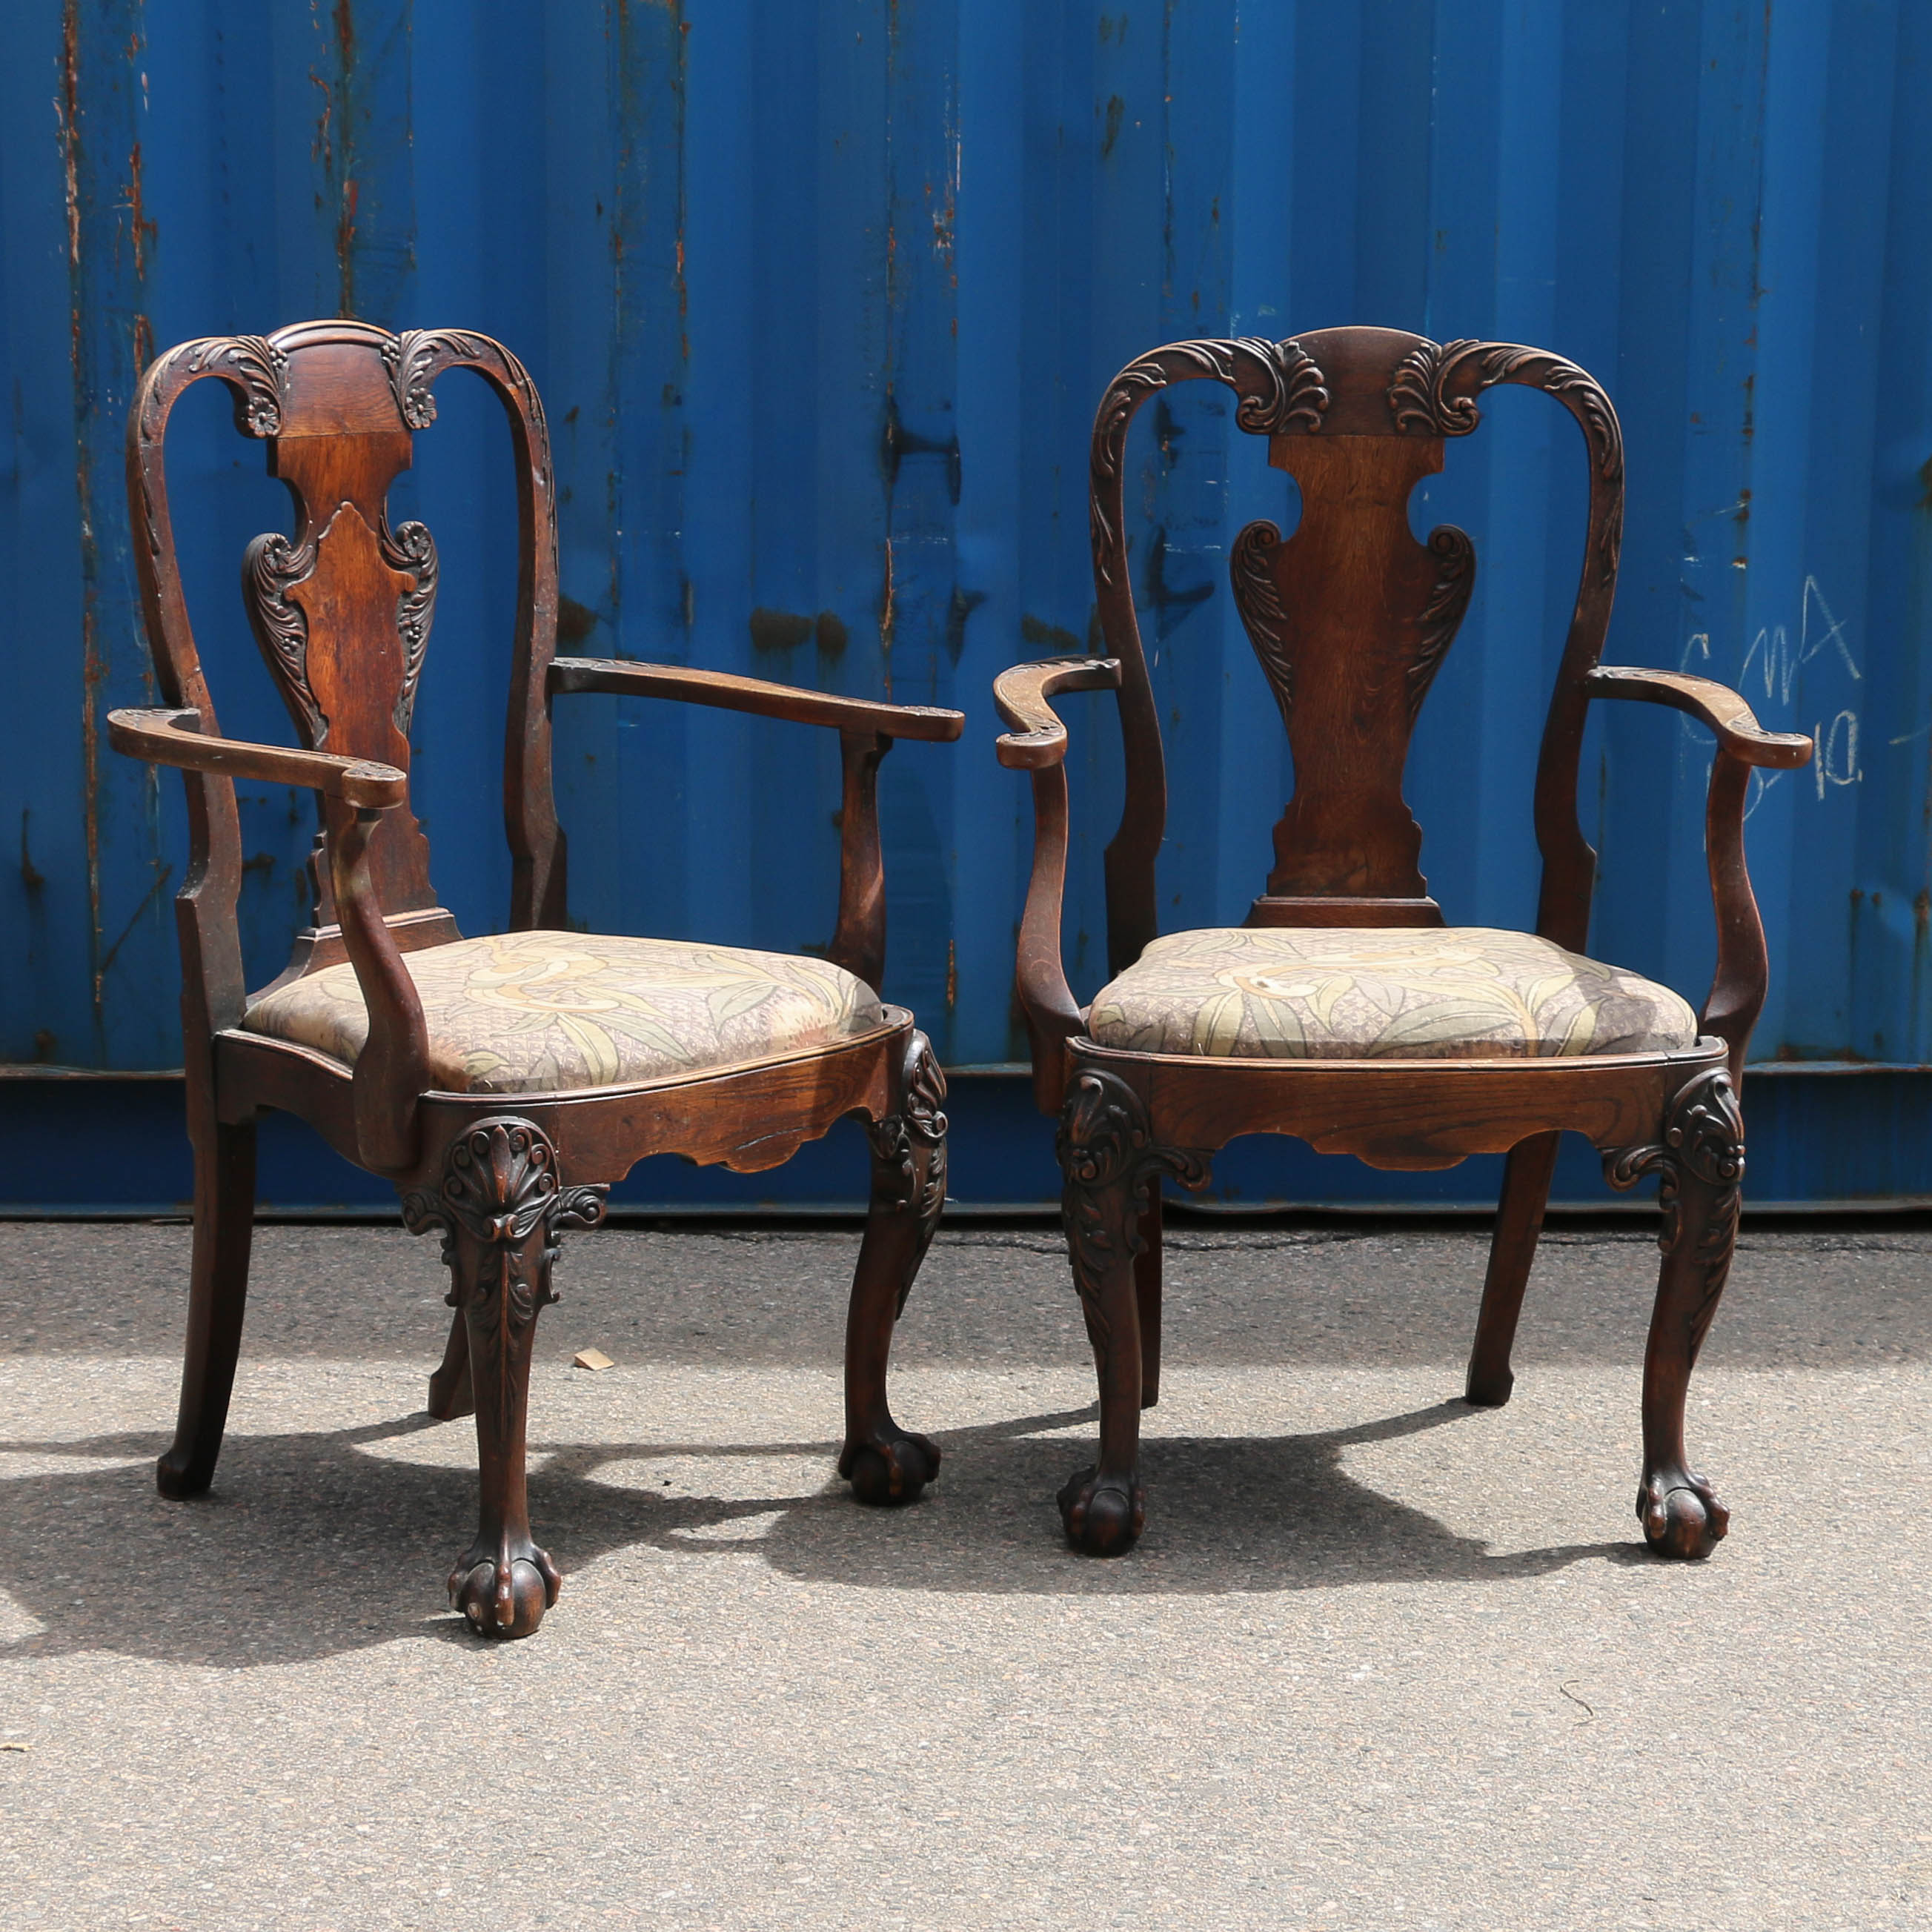 Pair Of Antique Arm Chairs With Ball And Claw Feetreturn To